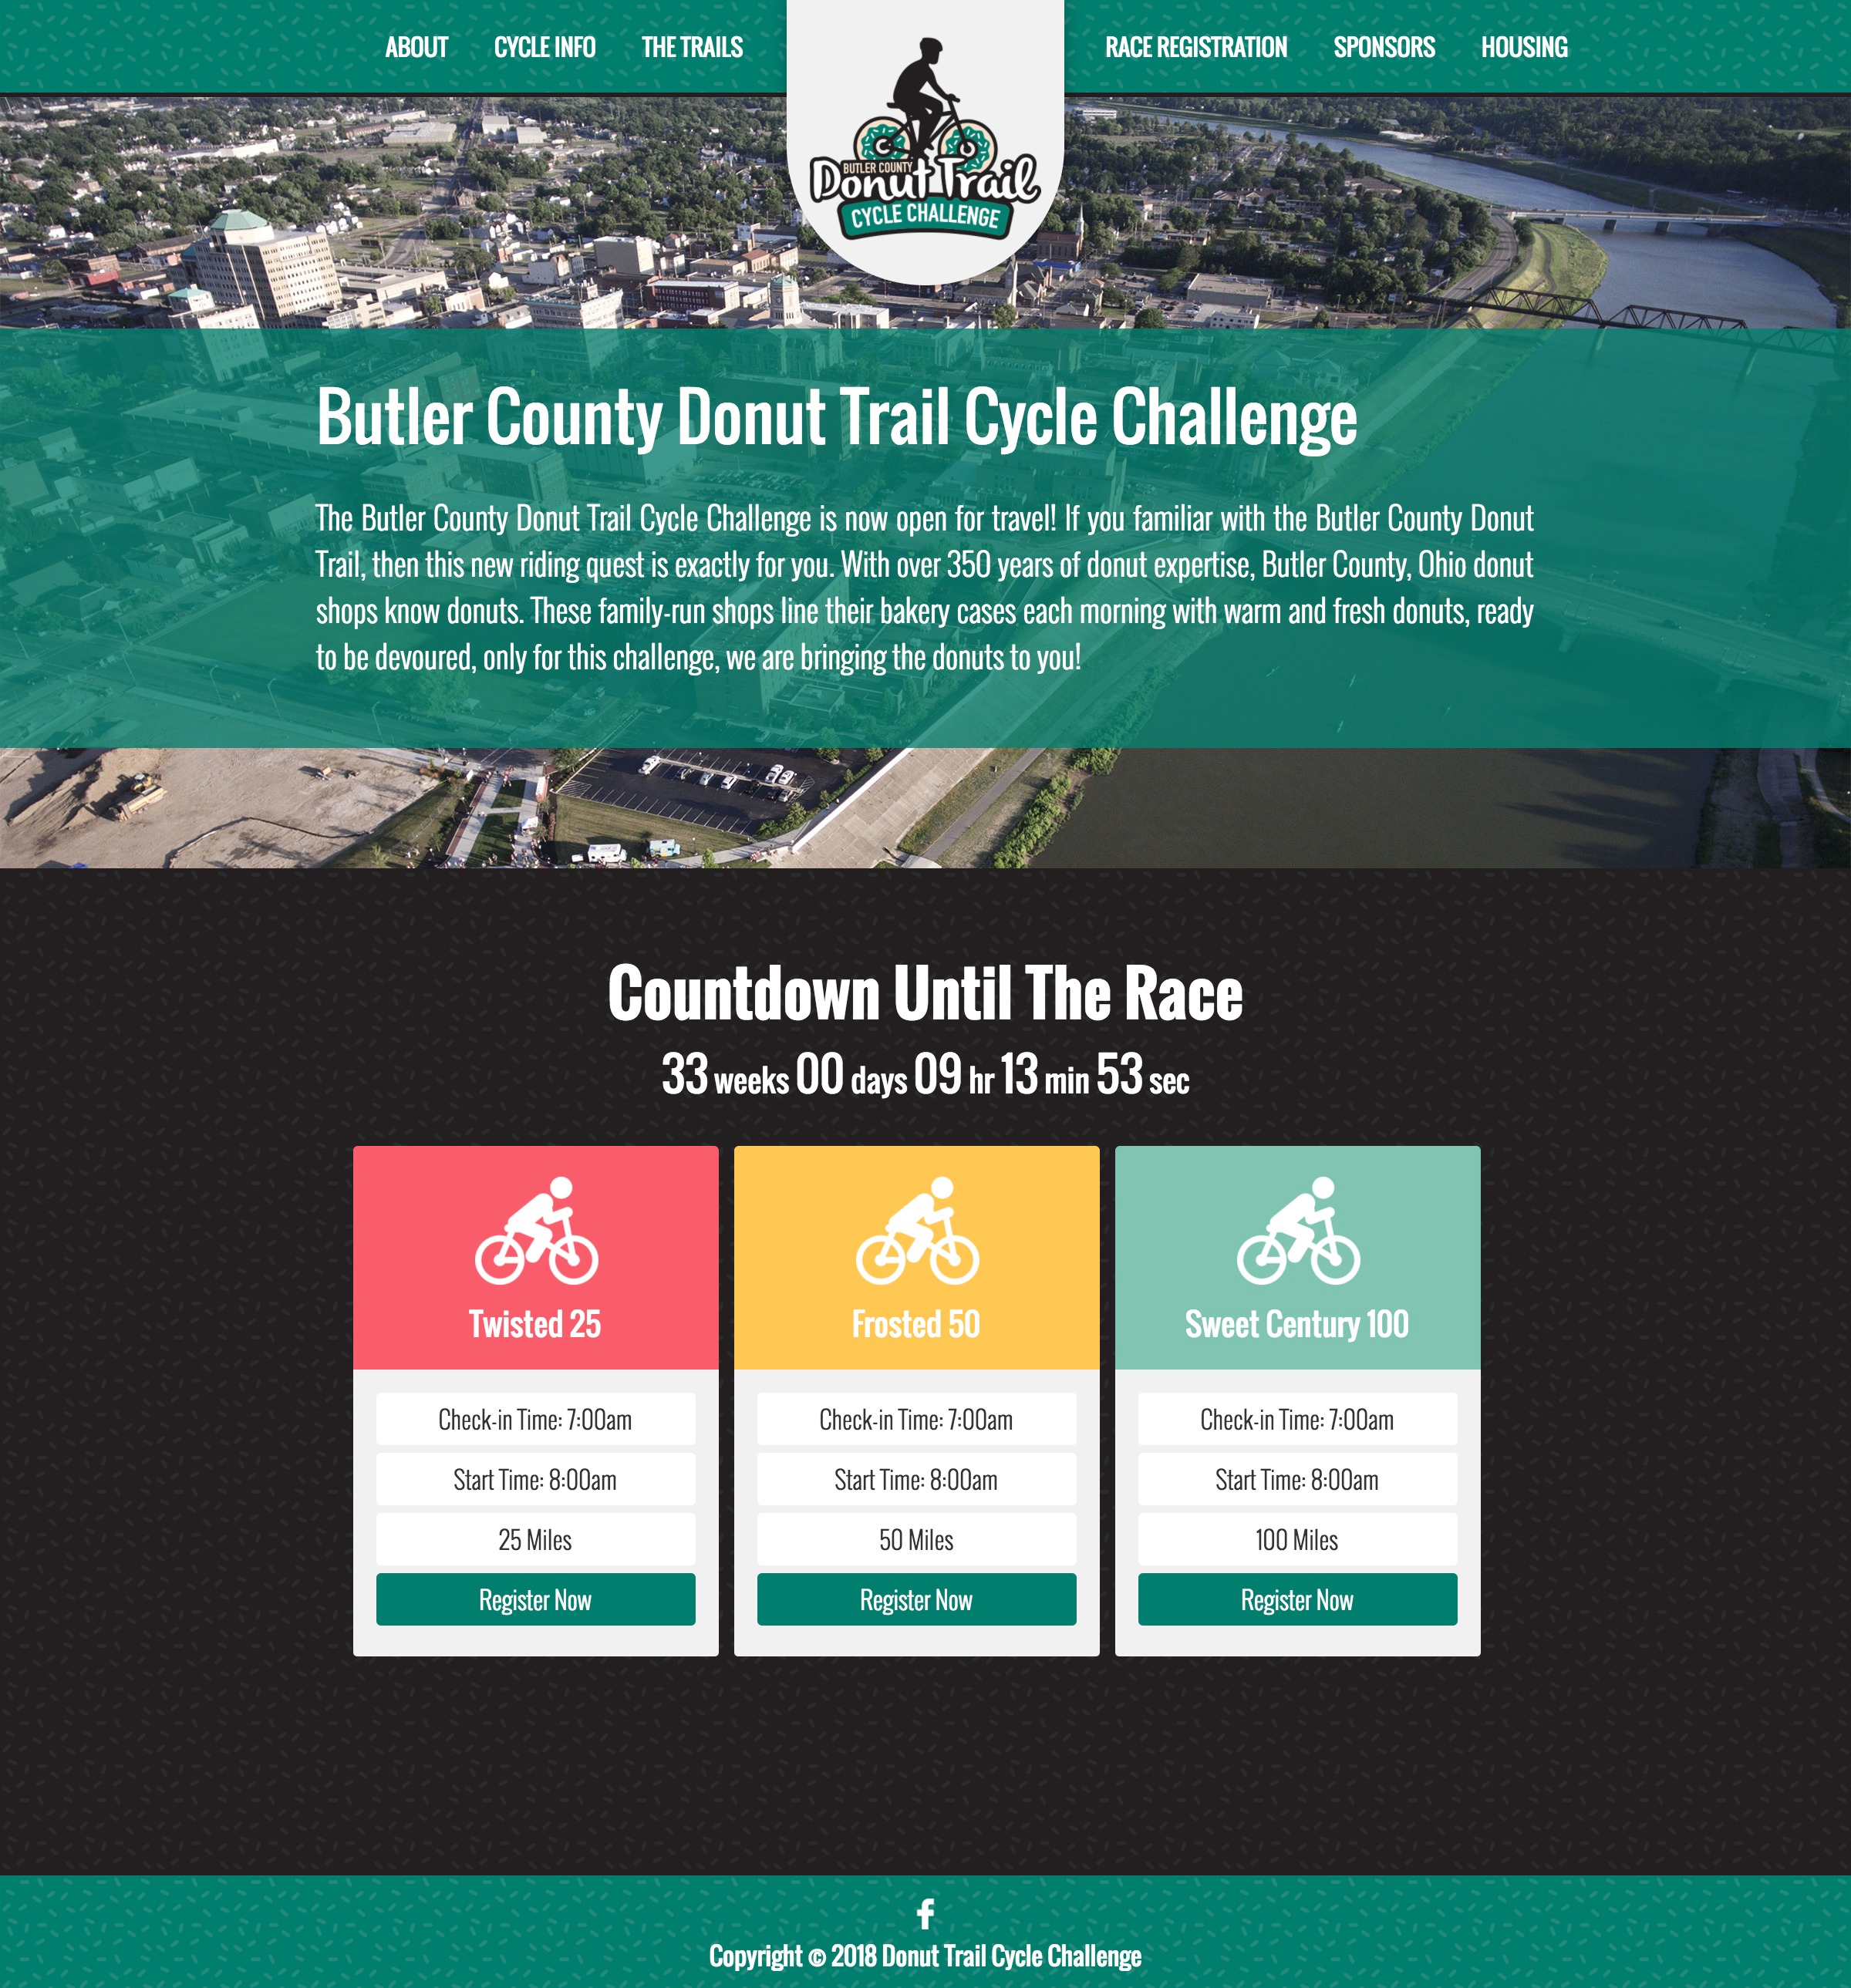 Butler County Donut Trail Cycle Challenge